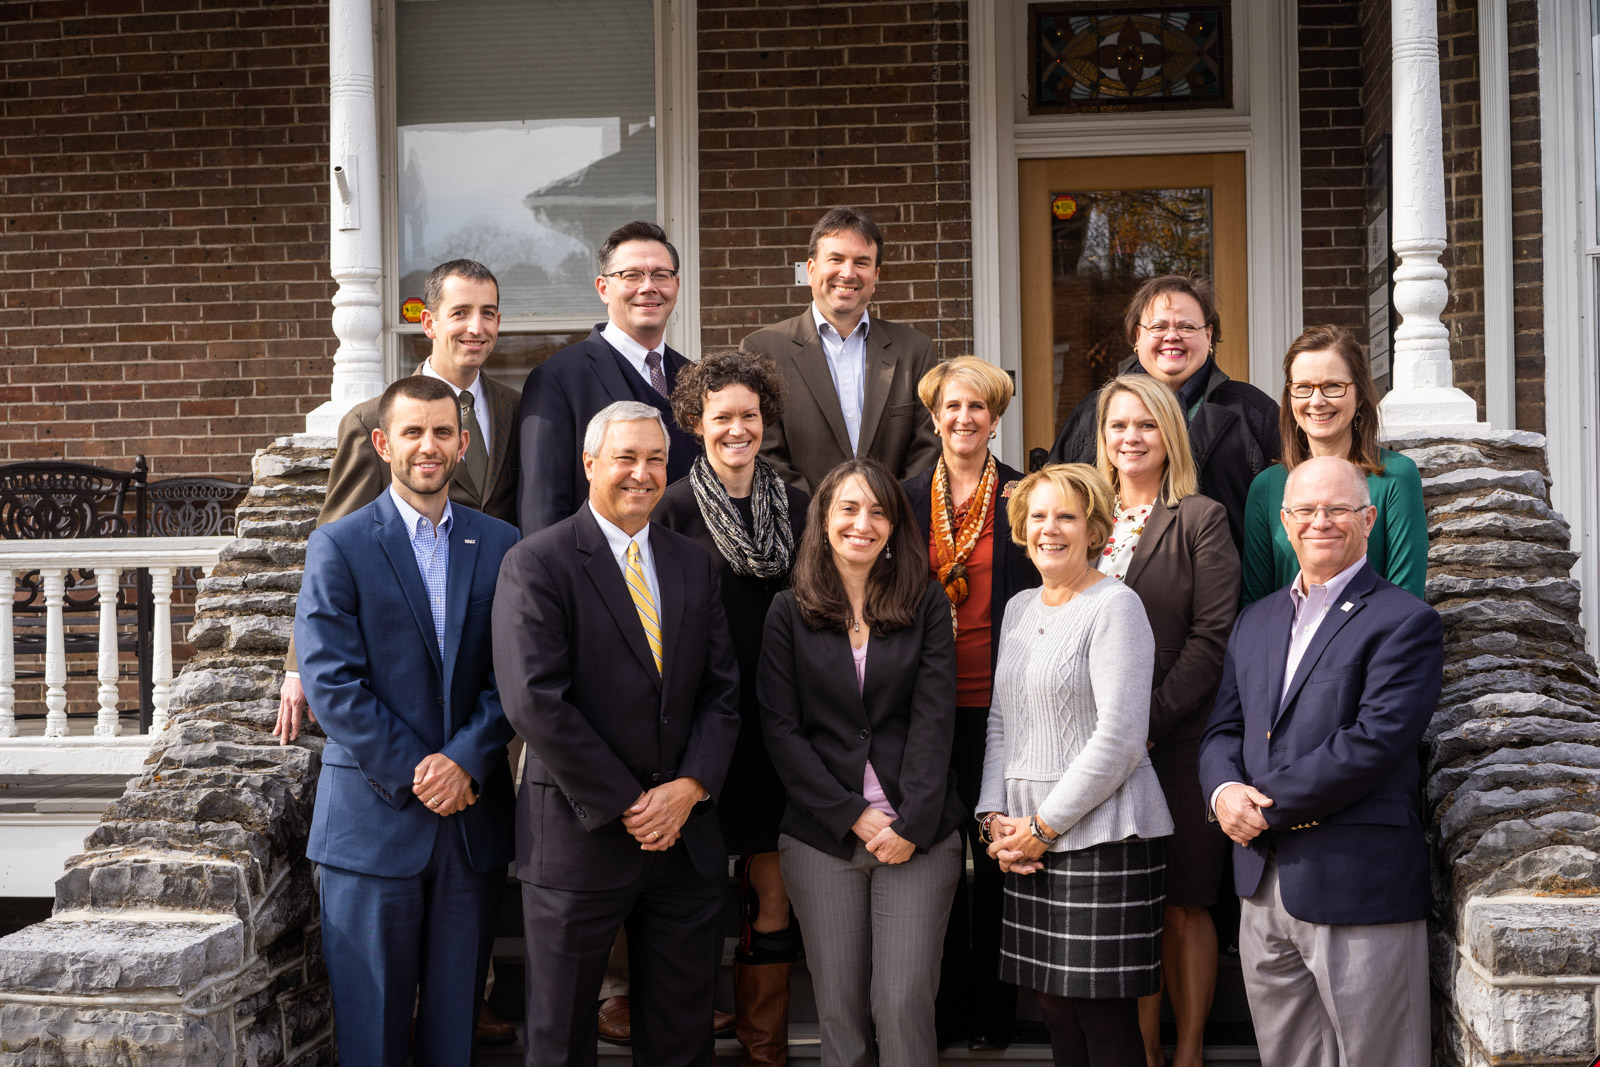 Board of Directors - The Community Foundation